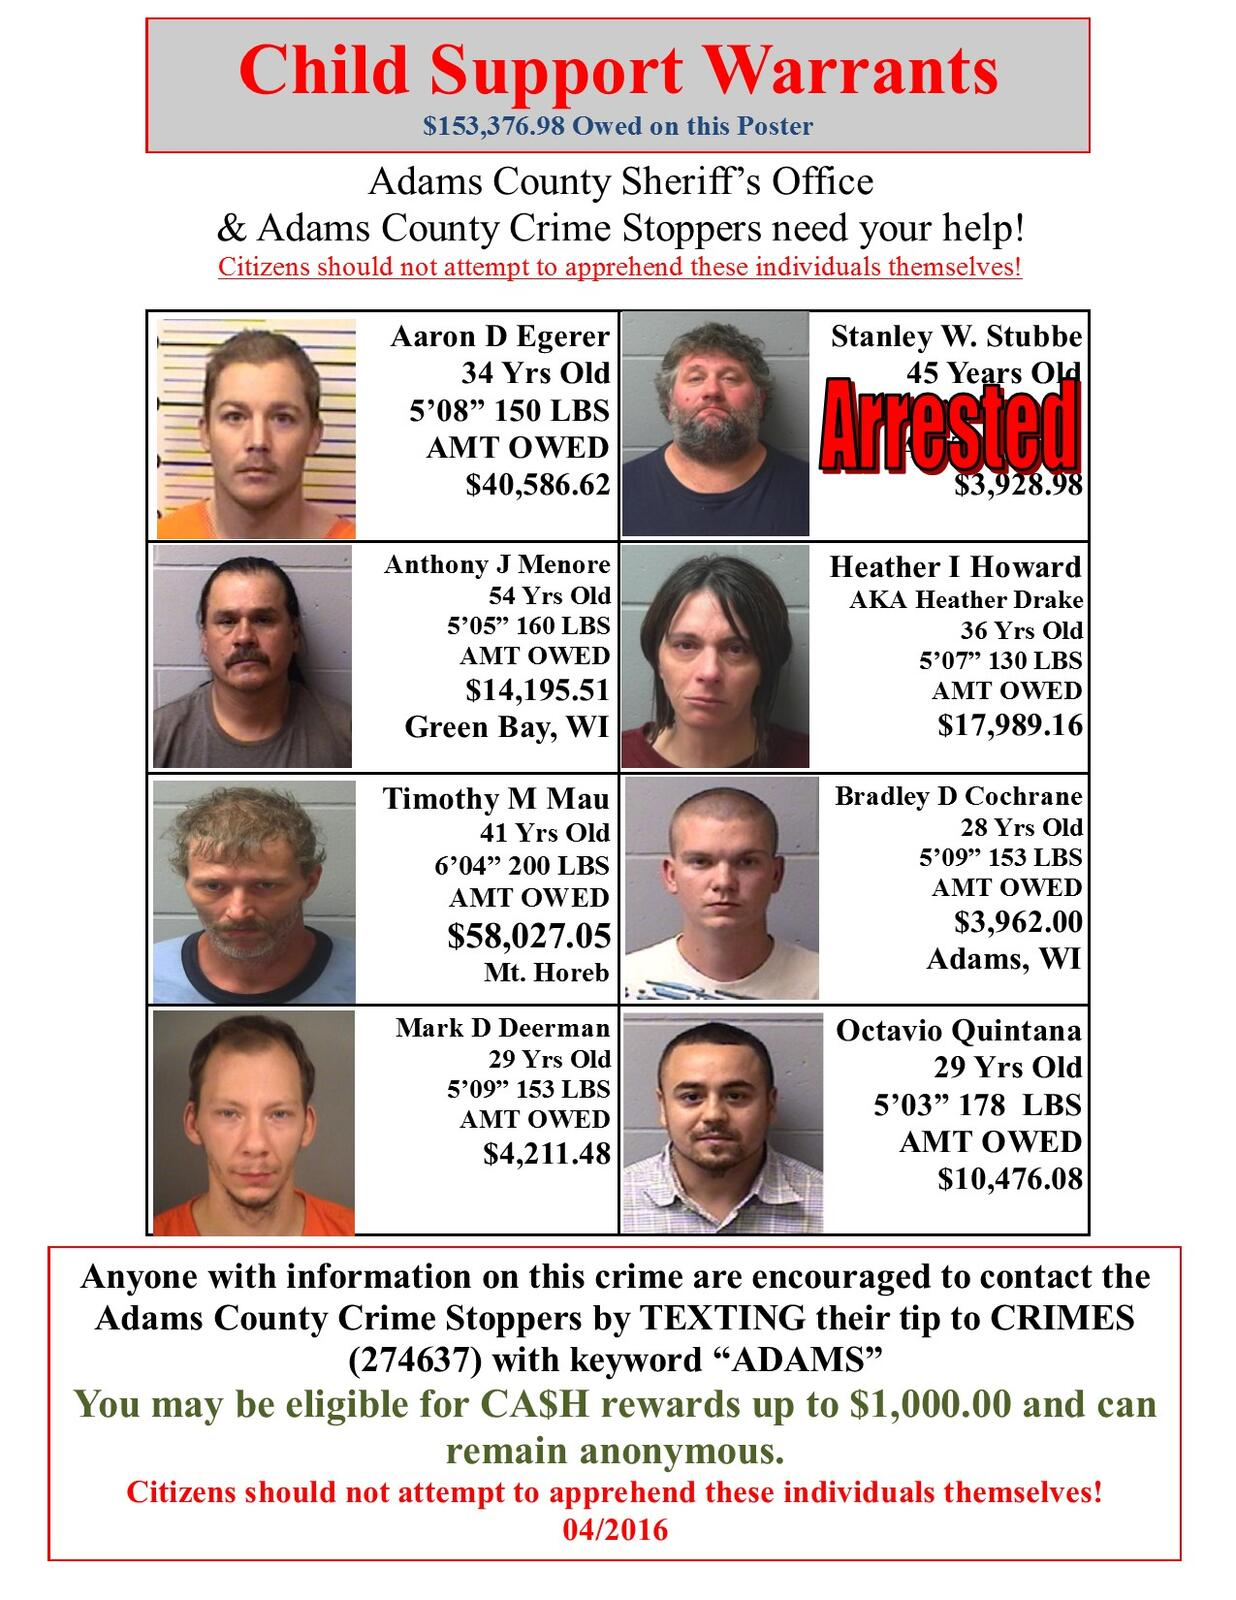 one off of the poster (Adams County Sheriff's Office) &mdash